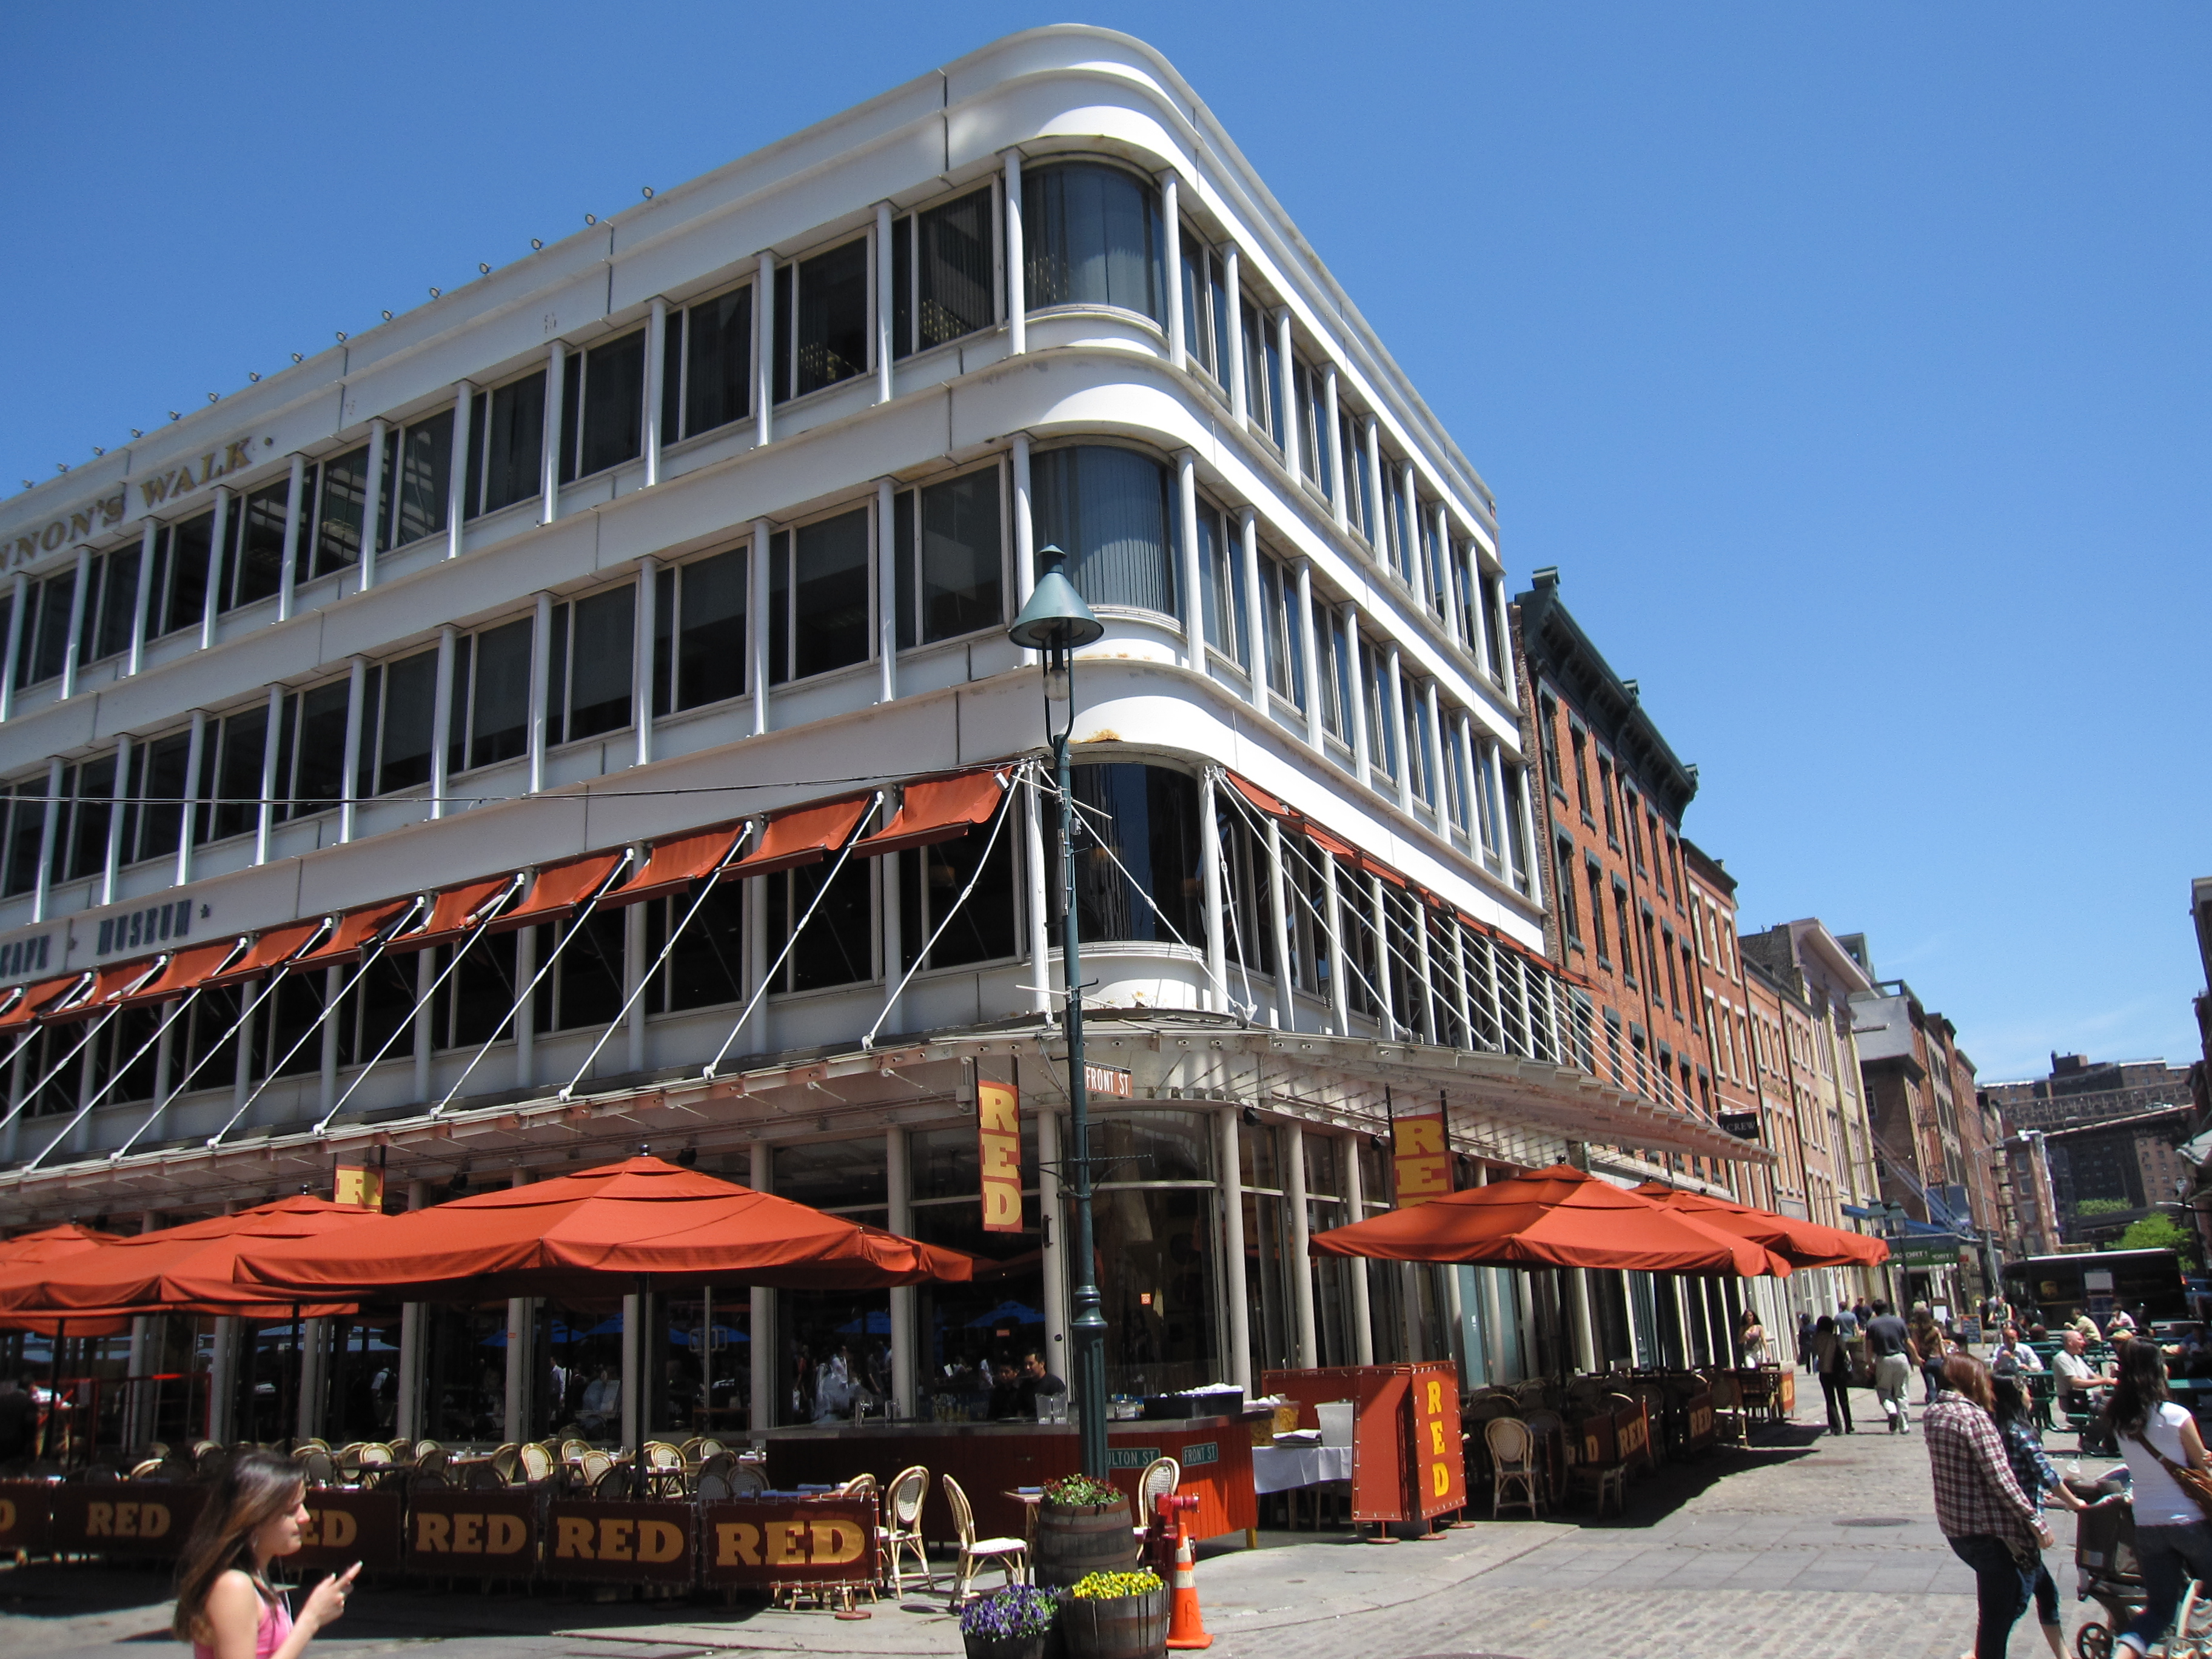 Free admission to South Street Seaport Museum